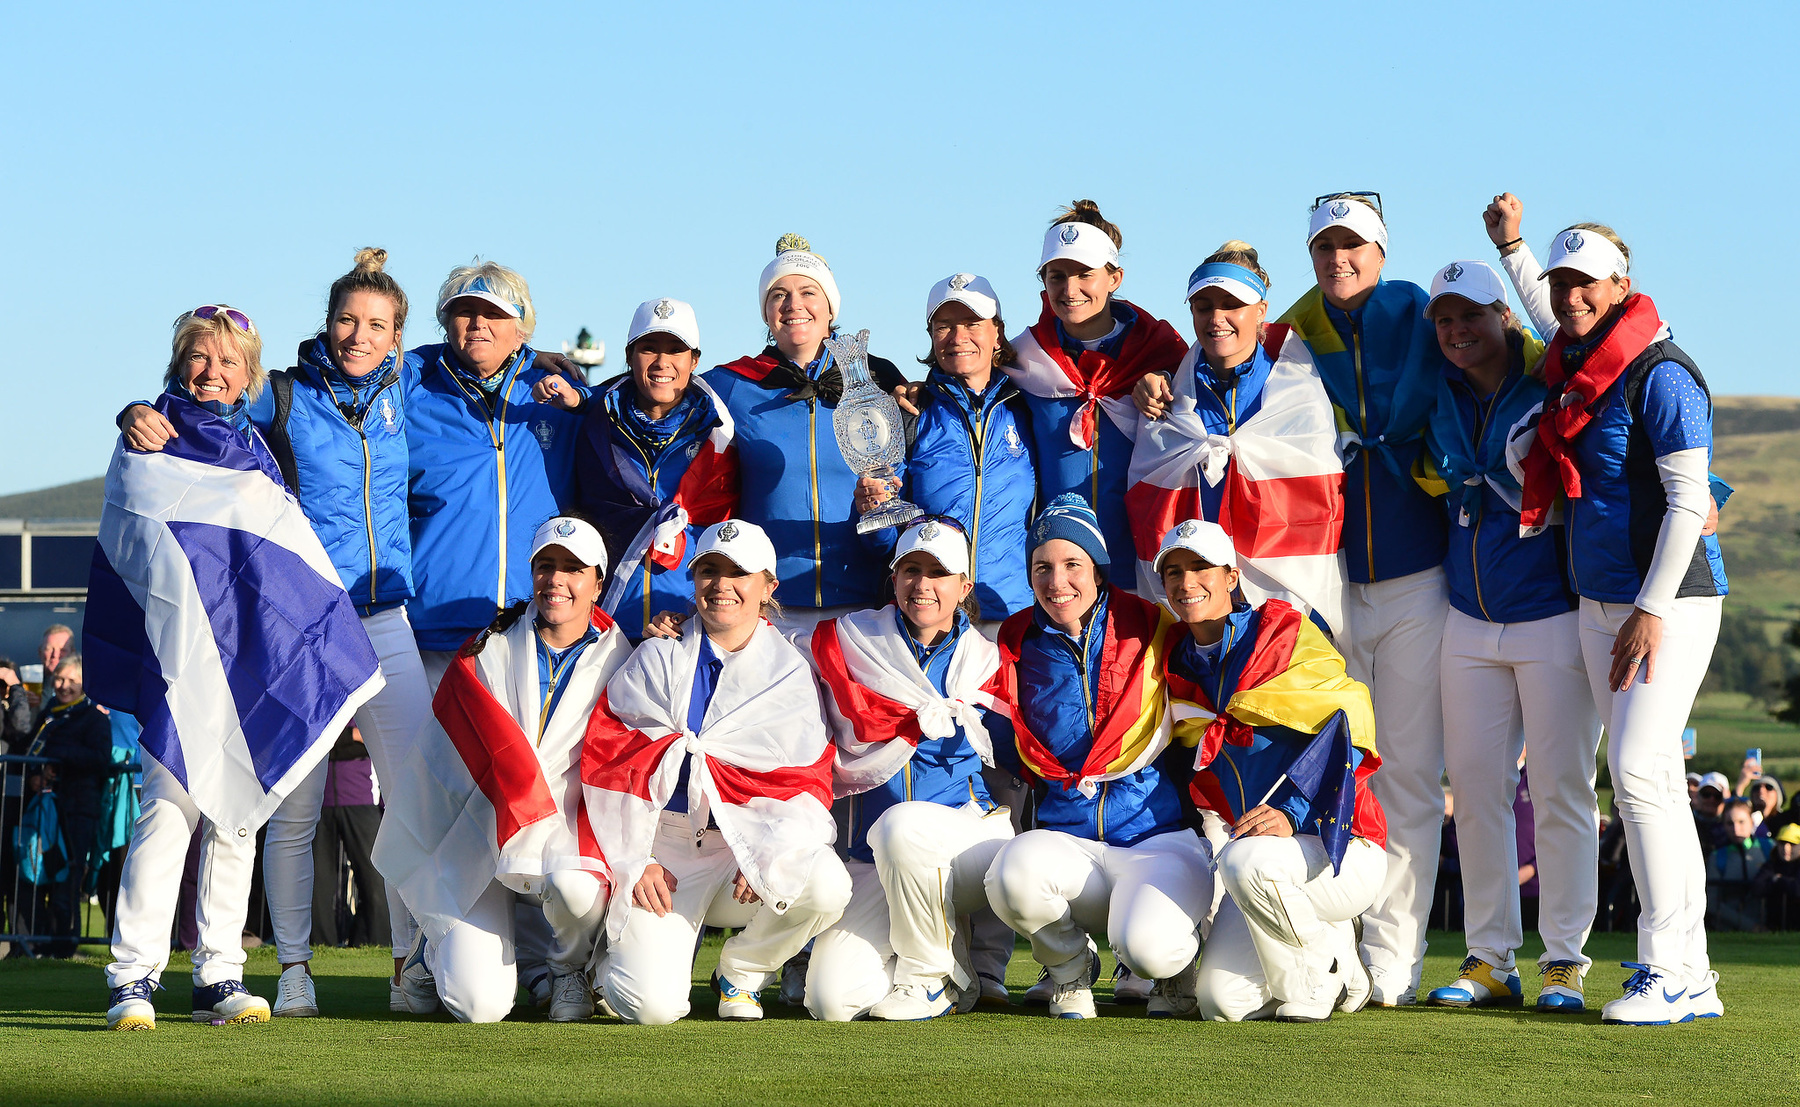 The European team celebrate together as they win the Solheim Cup